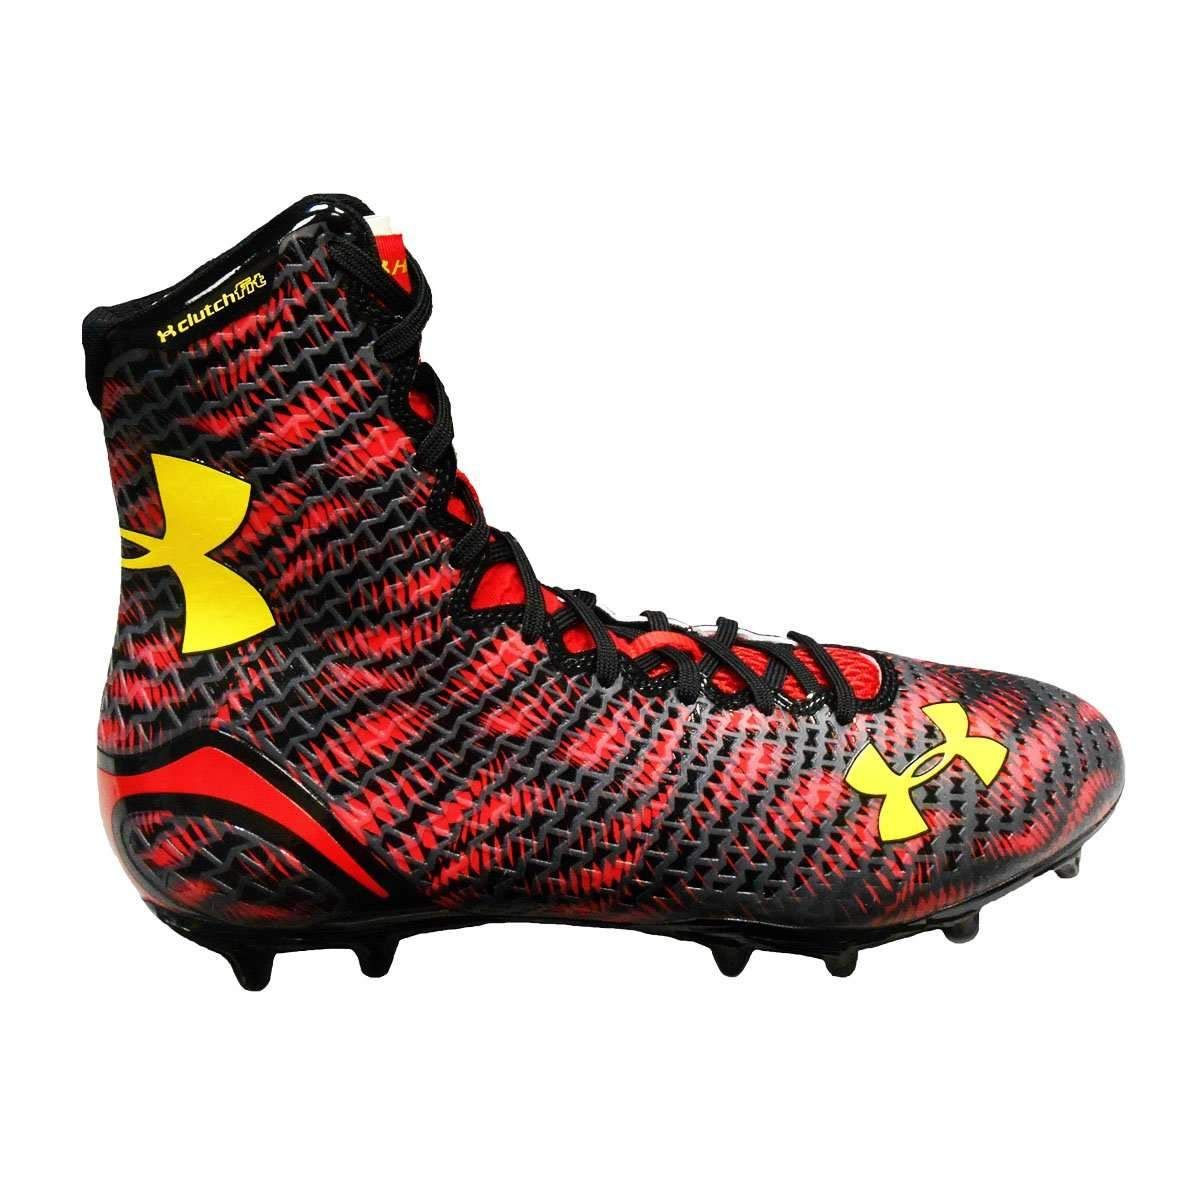 sports shoes bfc15 21190 Rawlings Boys  Intensity Mid Football Cleats (Black, Size 2) - Youth Football  Shoes at Academy Sports   Products   Youth football cleats, Football shoes,  ...